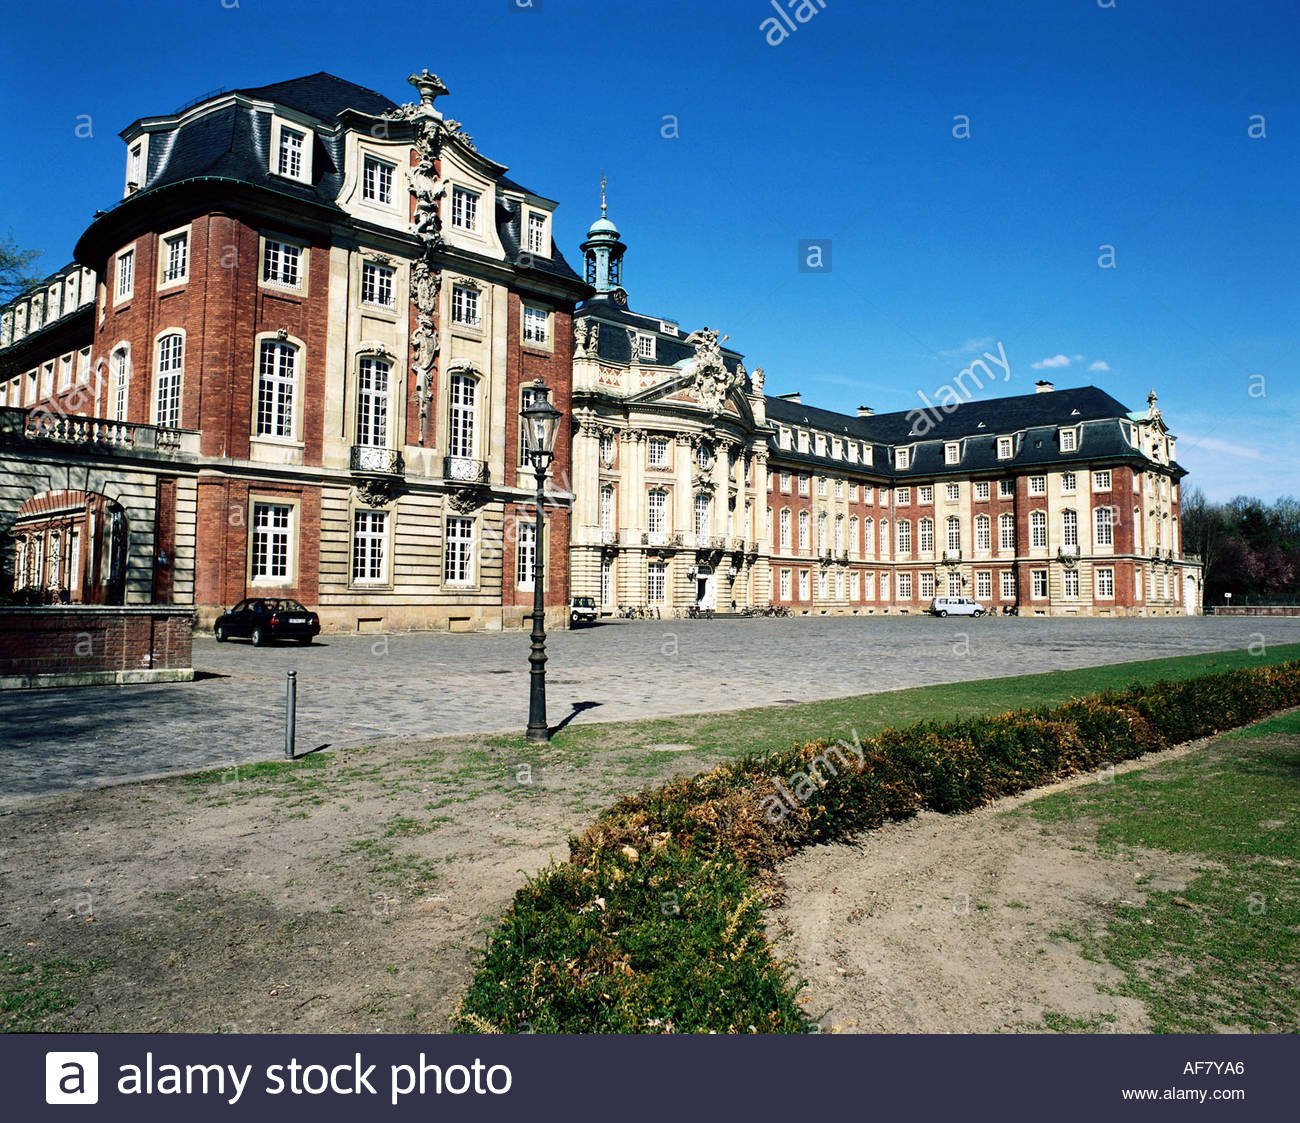 geography / travel, Germany, North Rhine-Westphalia, Munster, buildings, University (former castle), built 1767 - 1787 by Johann Conrad Schlaun, exterior view, Additional-Rights-Clearance-Info-Not-Available - Stock Image